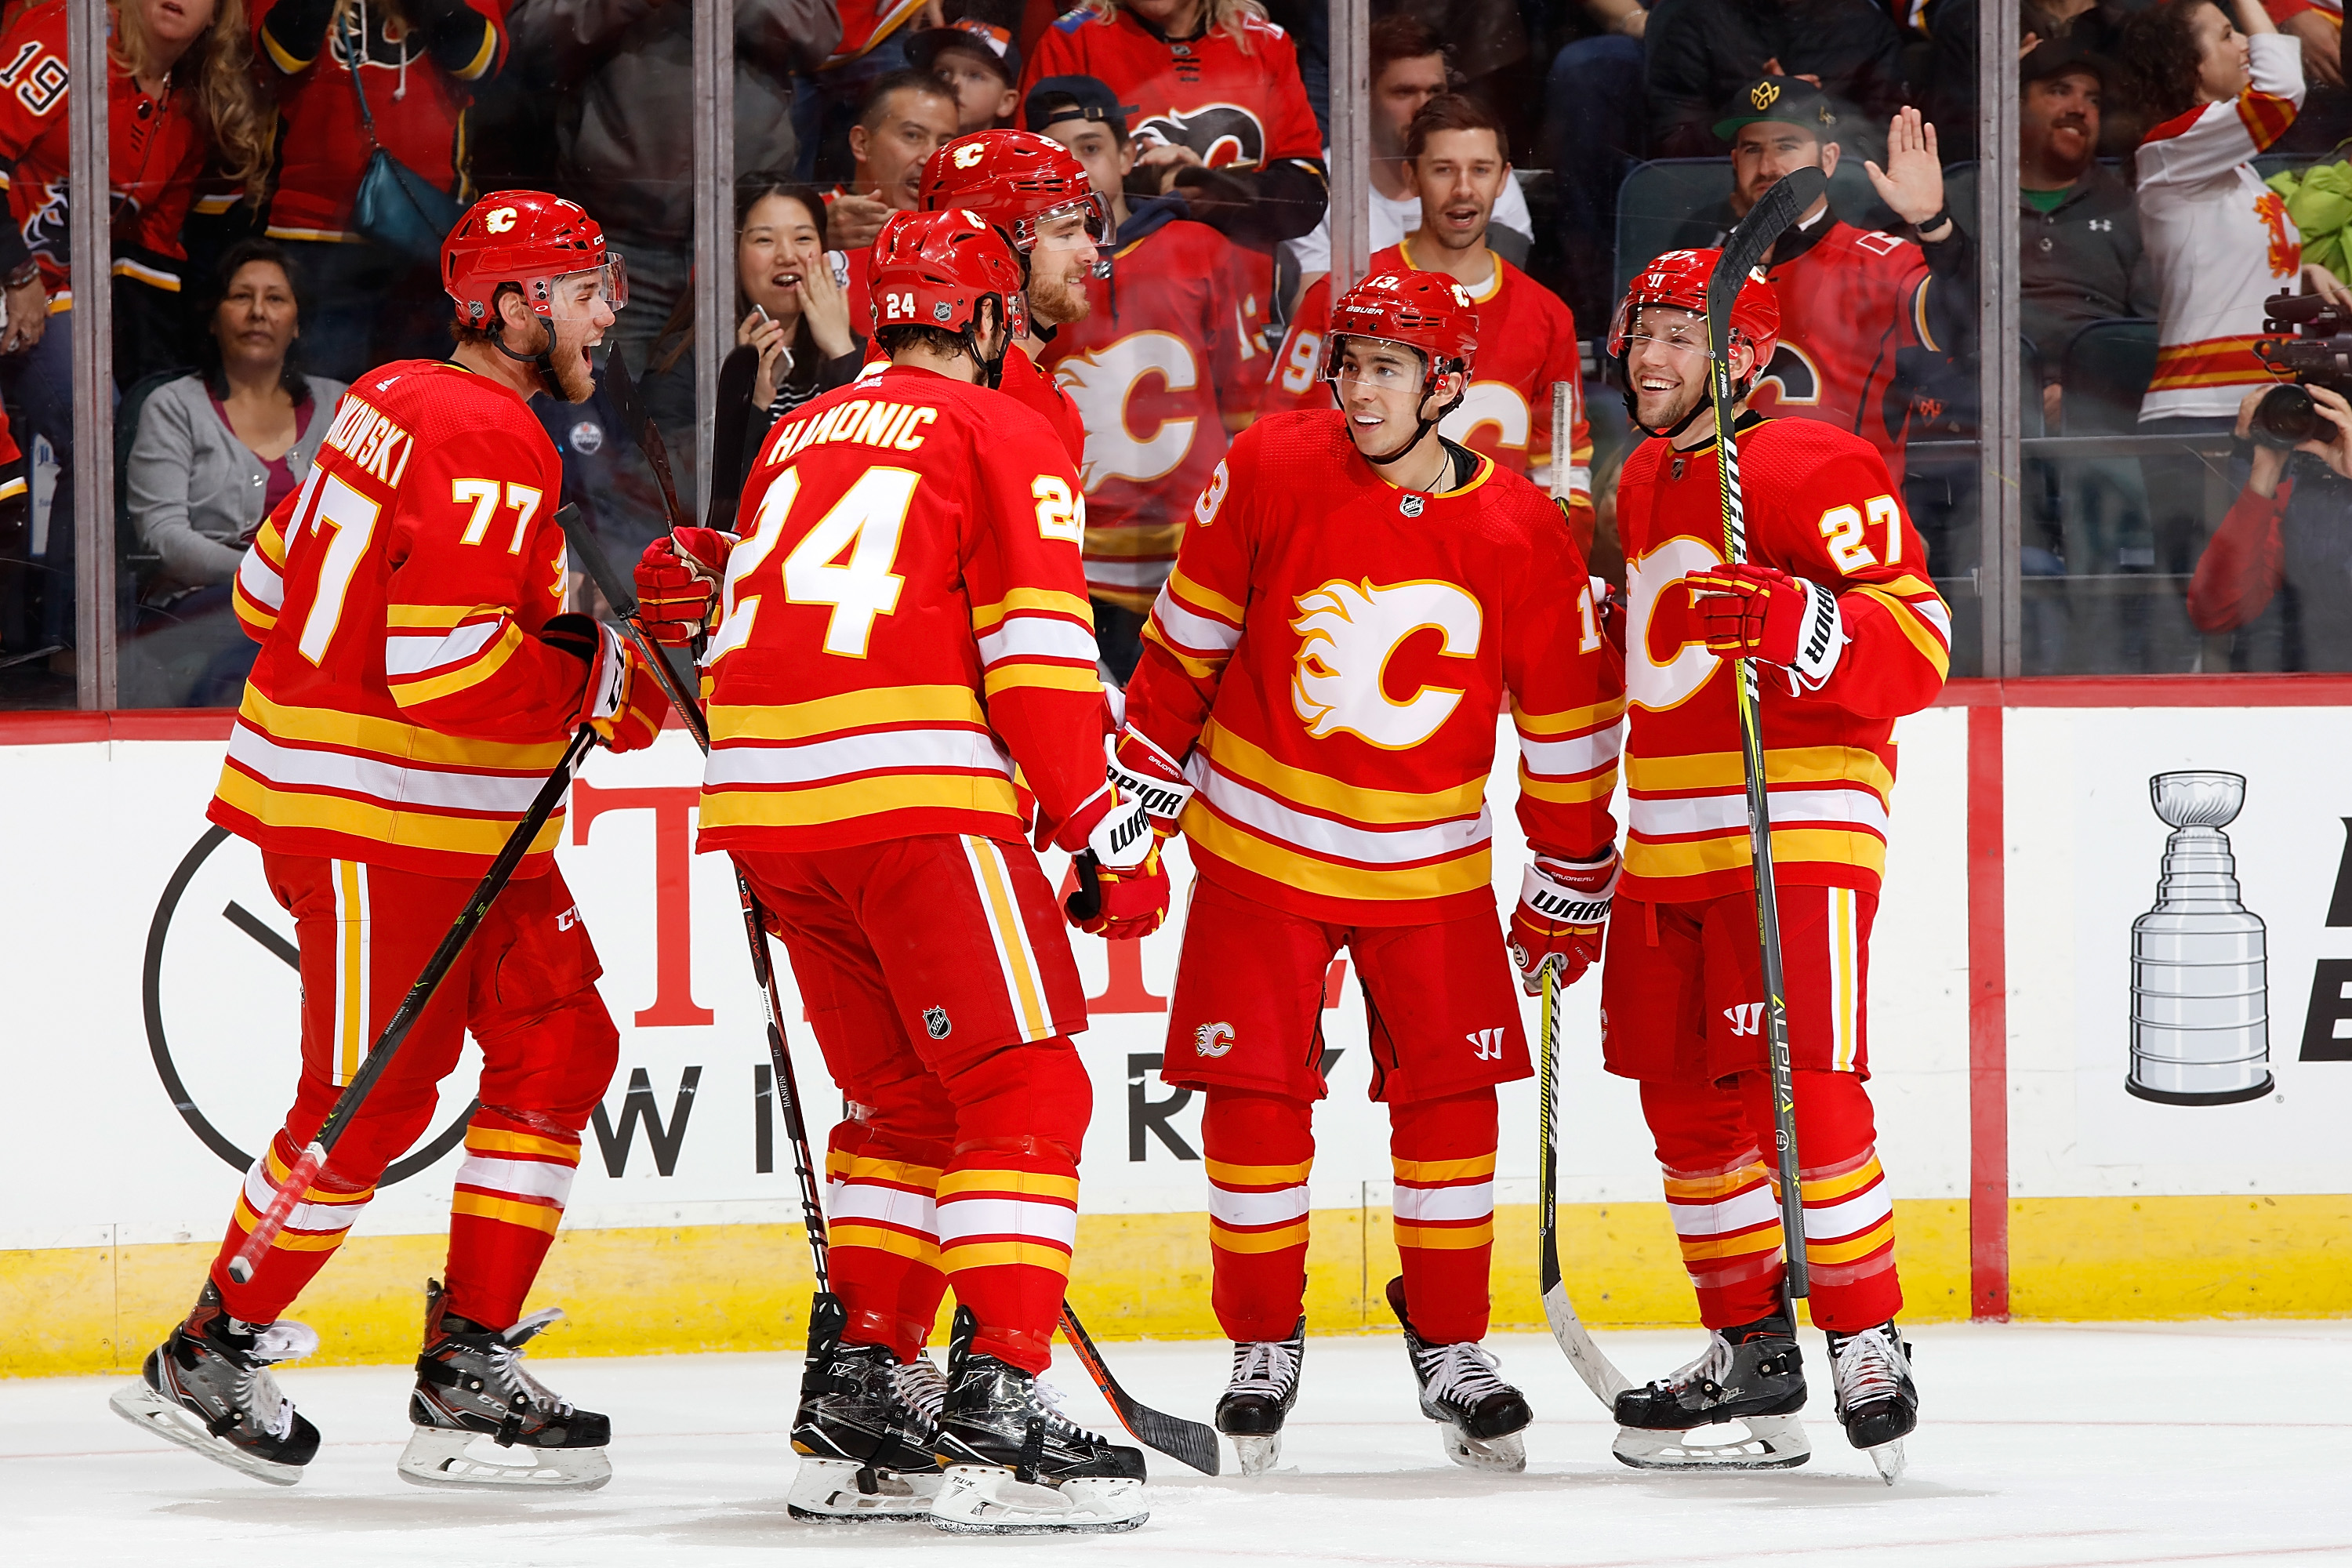 CALGARY, AB - APRIL 6: Mark Jankowski #77, Johnny Gaudreau #13 and teammates of the Calgary Flames celebrate a goal against the Edmonton Oilers during an NHL game on April 6, 2019 at the Scotiabank Saddledome in Calgary, Alberta, Canada.